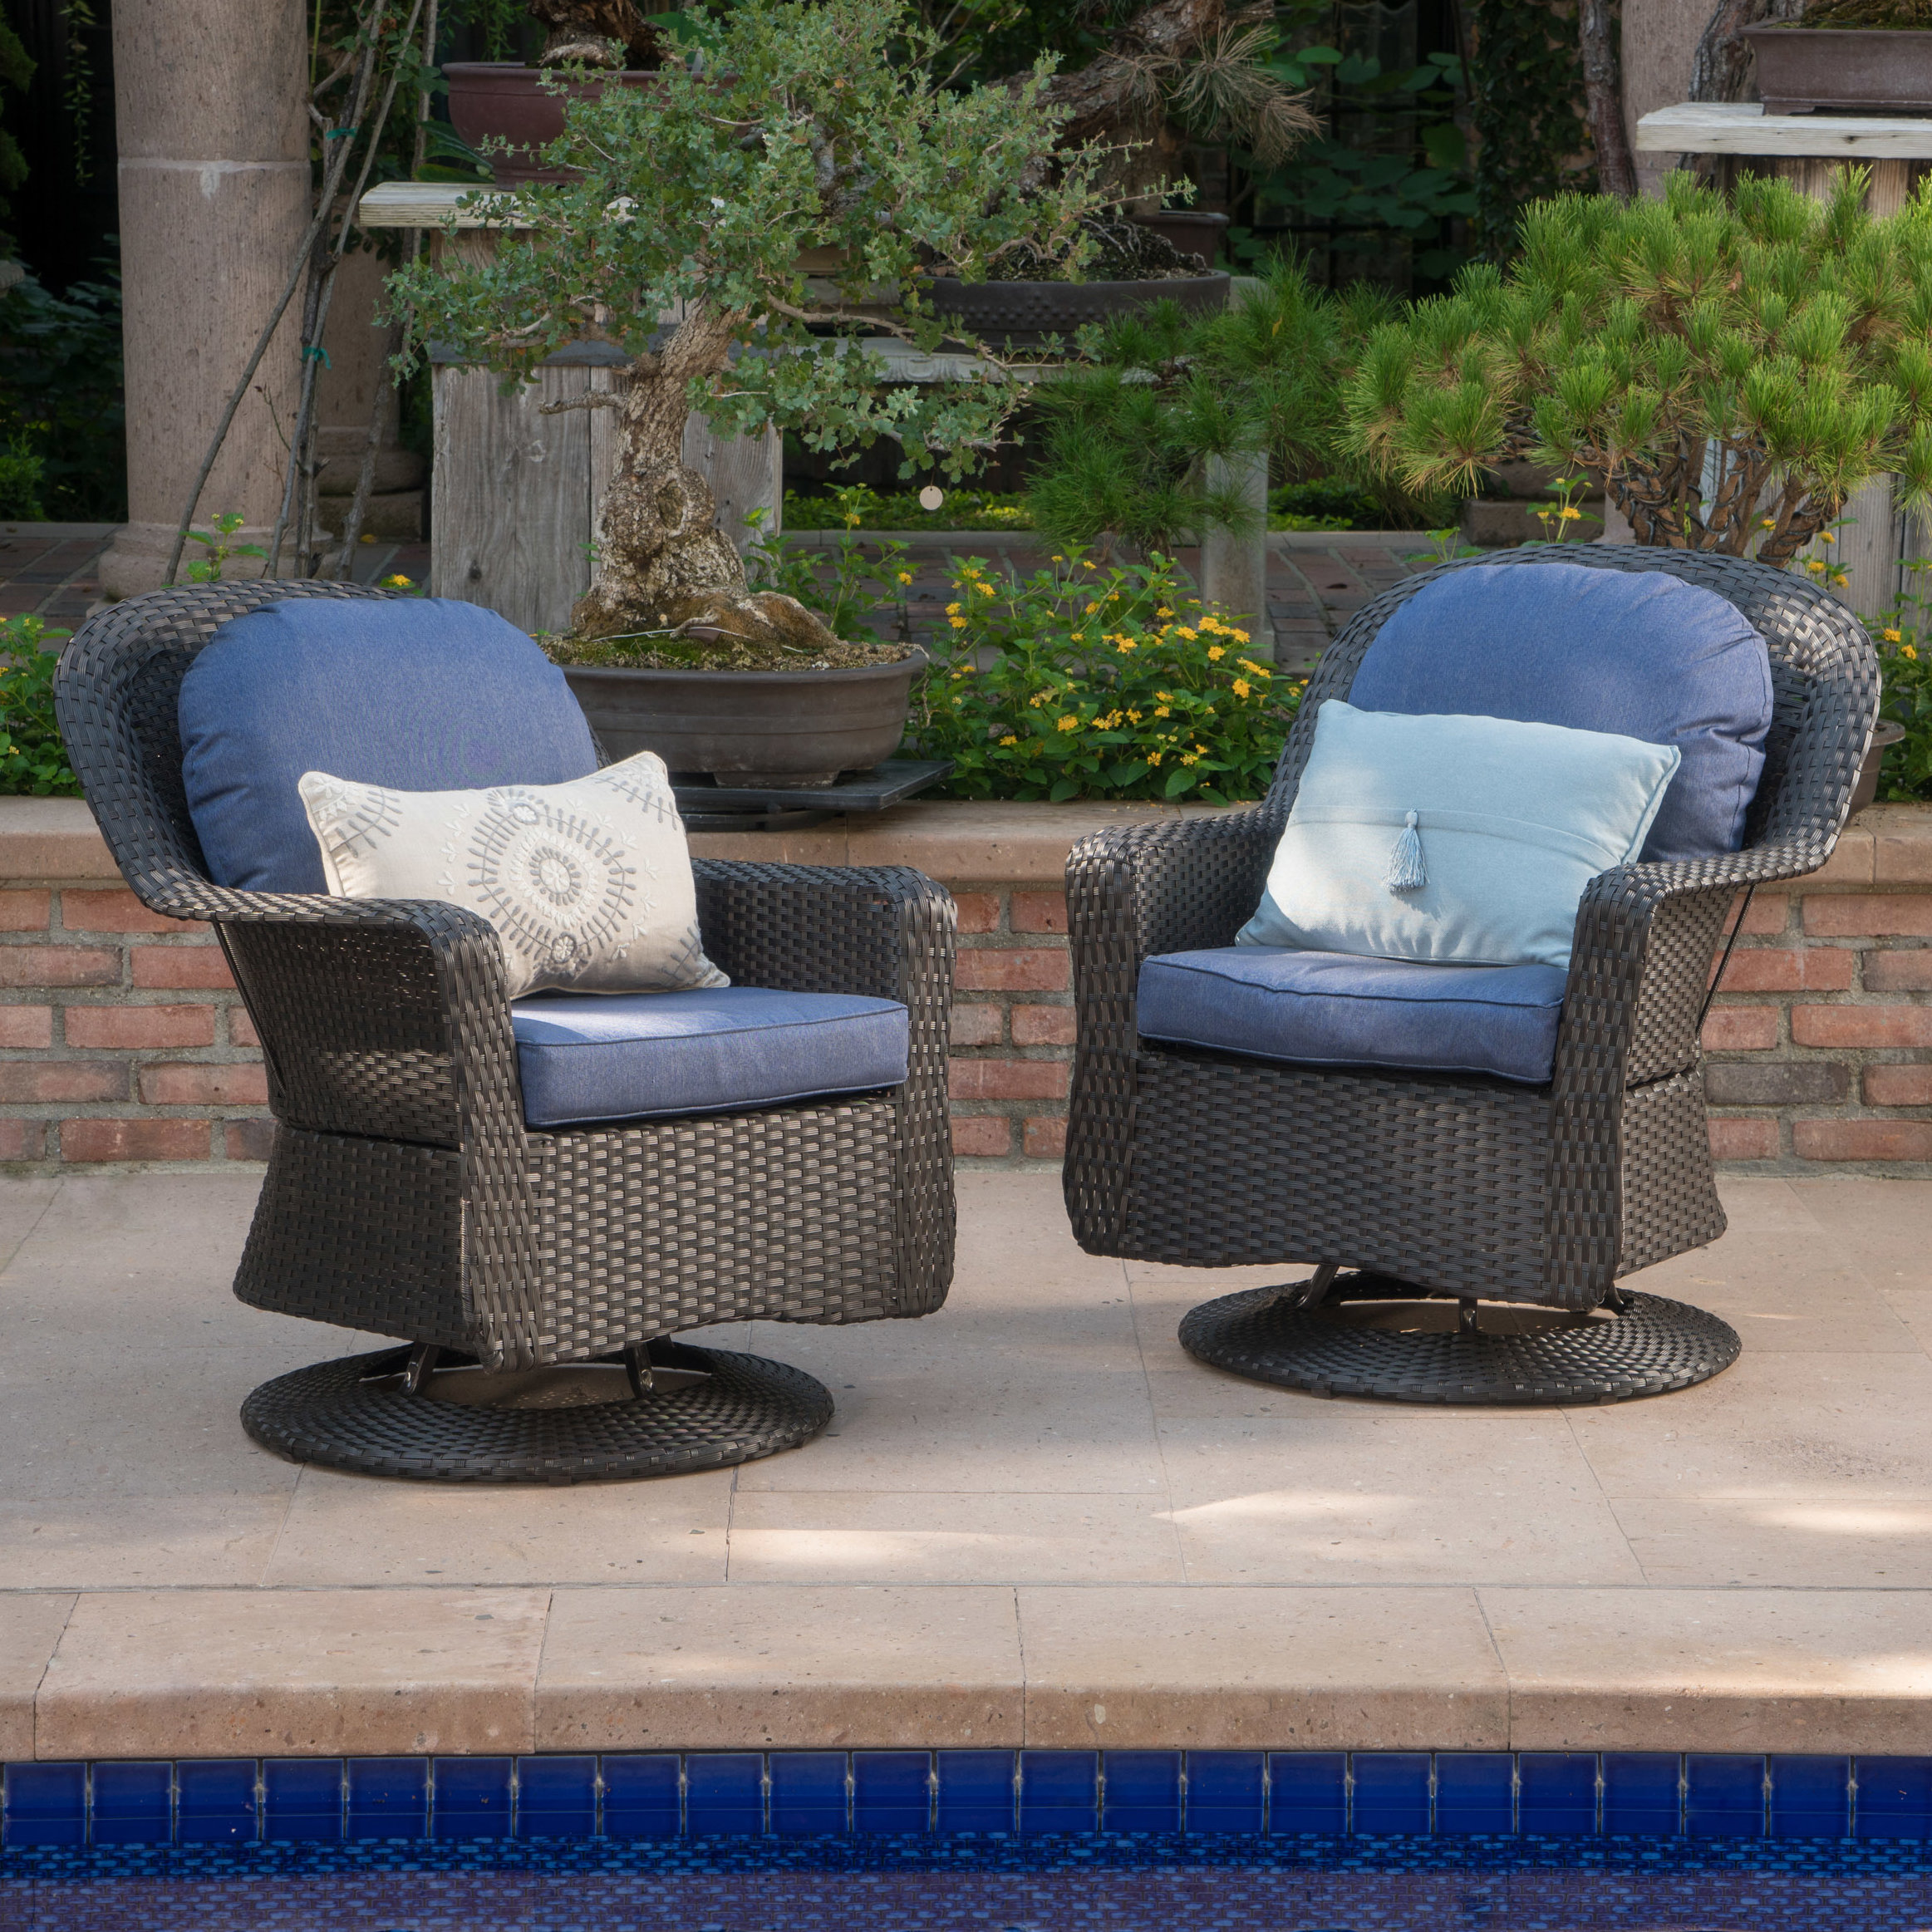 darby home middletown modern outdoor wicker swivel club patio chair with cushions arm pads reviews sitting bicycle kitchen table chairs ikea furniture navy slipper blue next